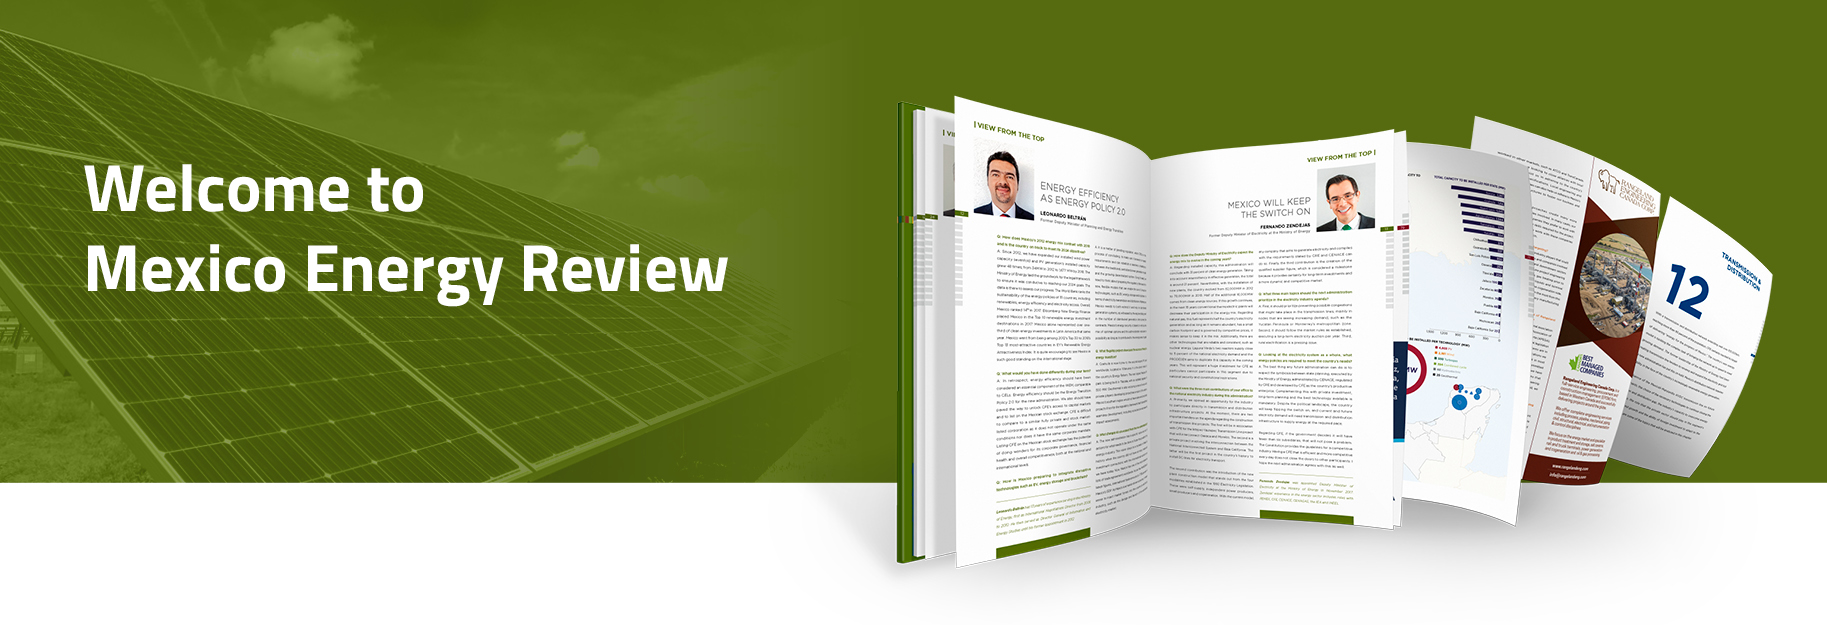 Mexico Energy Review | Mexico Business Publishing (mbp)